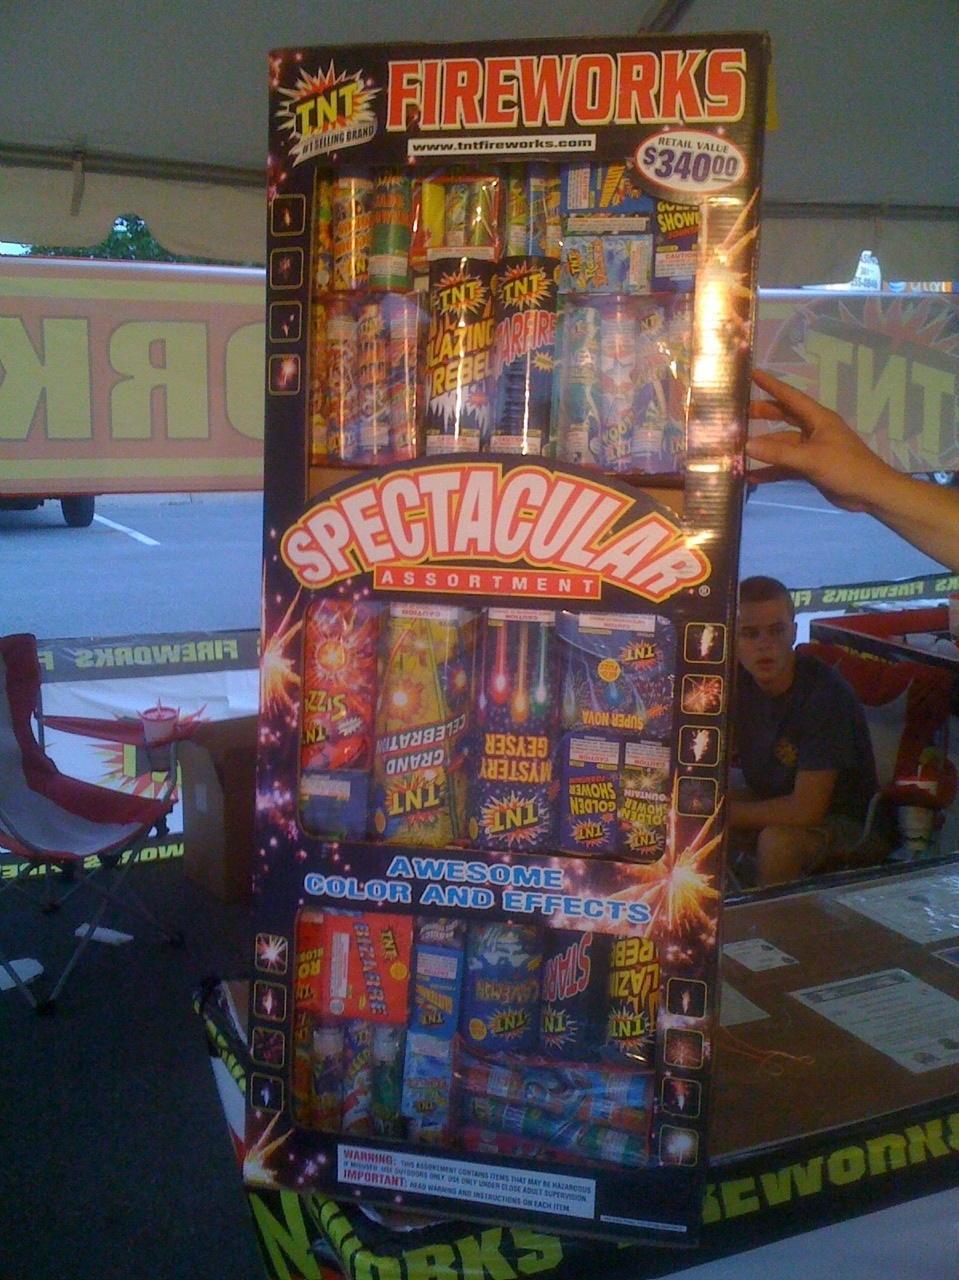 photo regarding Tnt Fireworks Coupons Printable identify Tnt fireworks tent coupon codes : Coupon workers parking msp